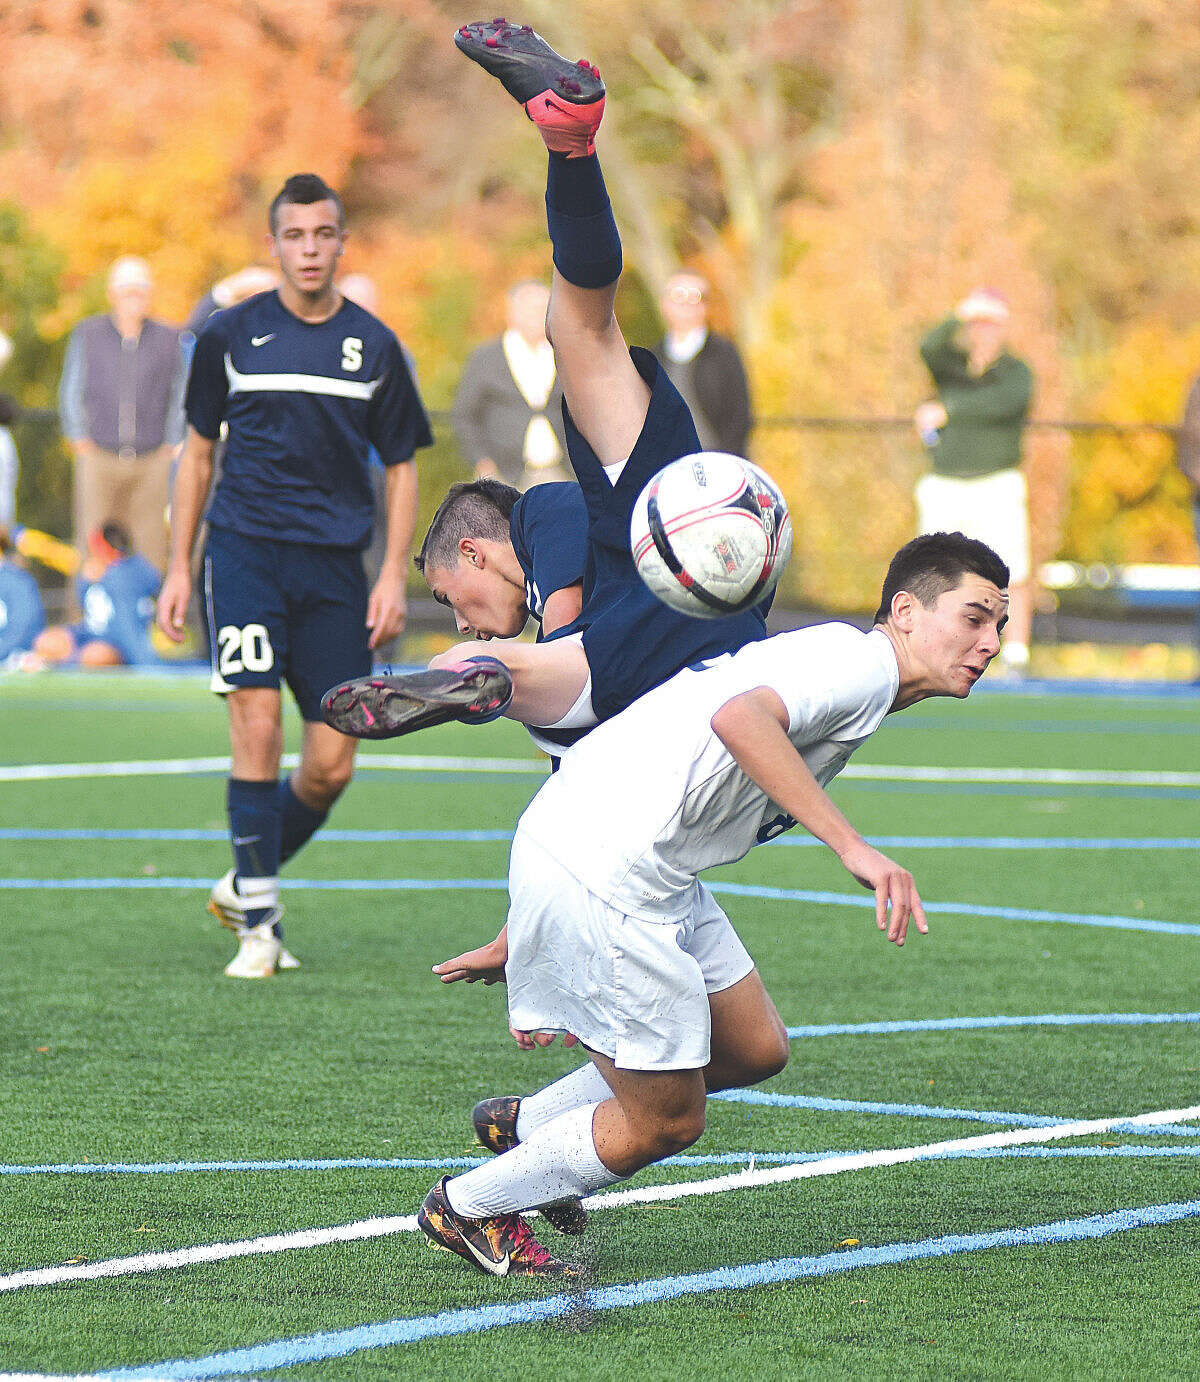 Hour photo/John Nash - Staples' Anton Mahr, center, gets upended by Darien's Sean Gallagher as the Wreckers' Joshua Berman (20) looks on during the second half of Thursday's FCIAC boys soccer playoff game in Darien. The Blue Wave won 2-0.